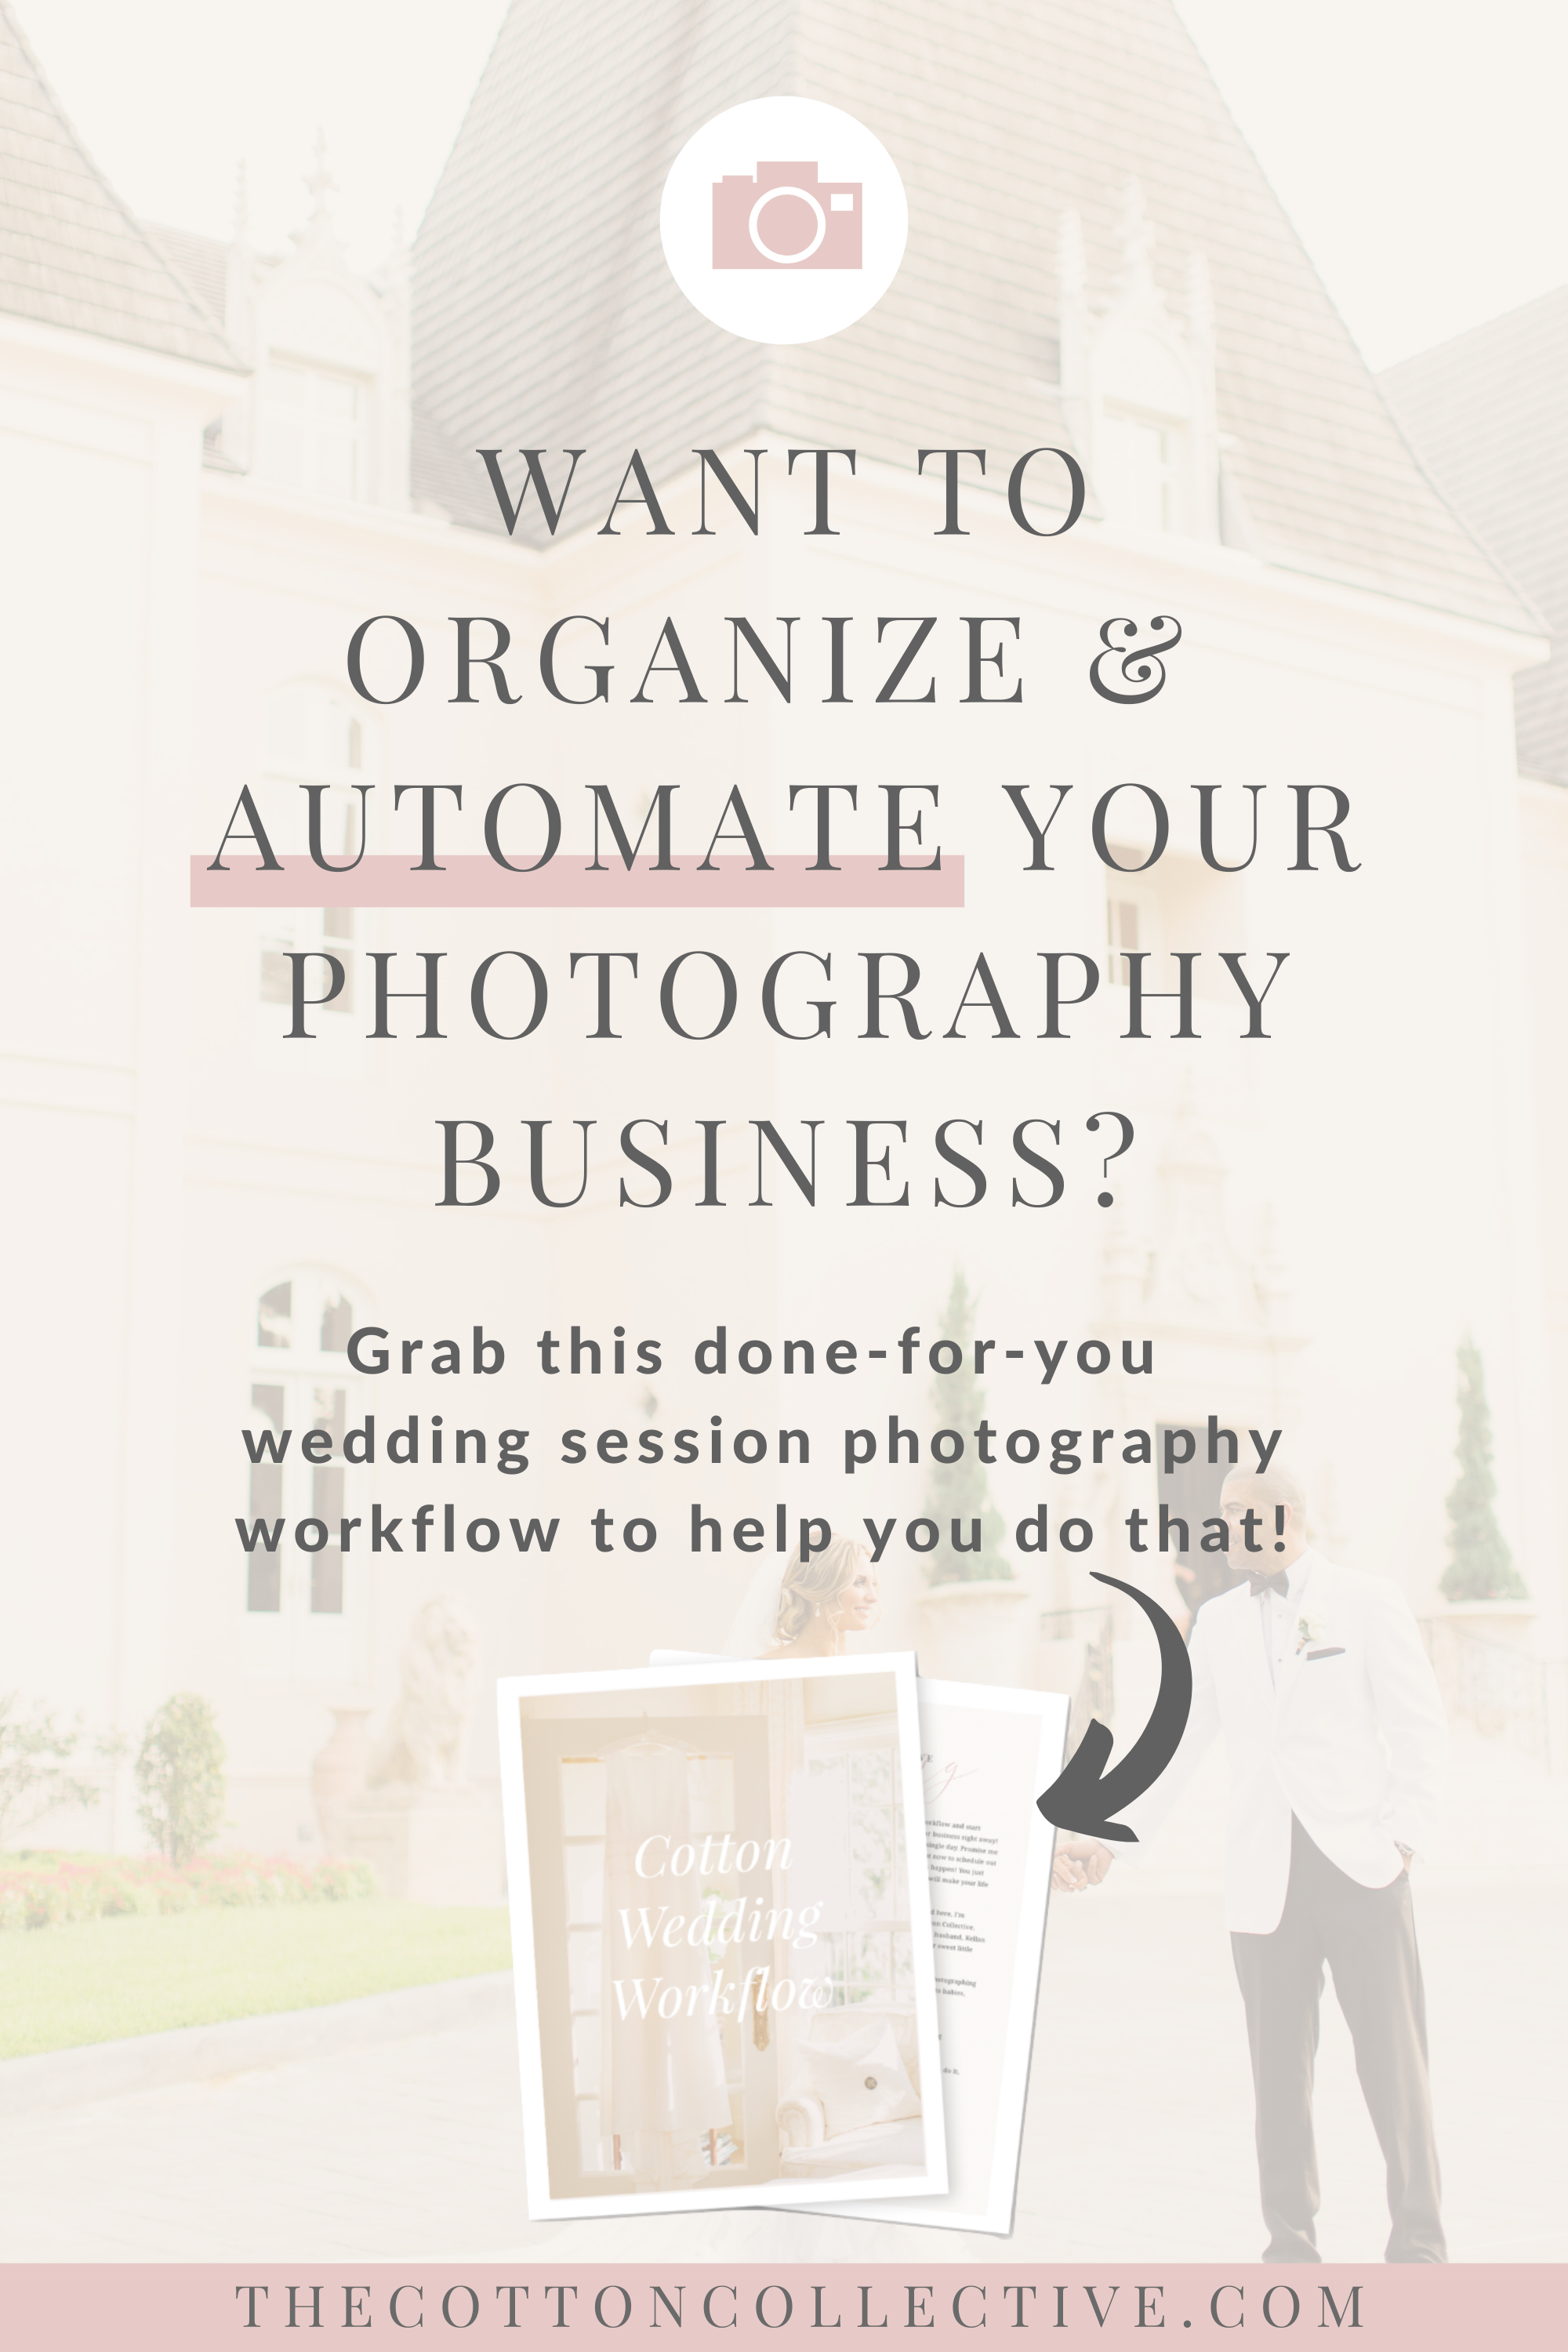 How To Organize Your Wedding Photography Business Wedding Photography Tip Wedding Photography Business Wedding Photography Tips Wedding Photographer Business